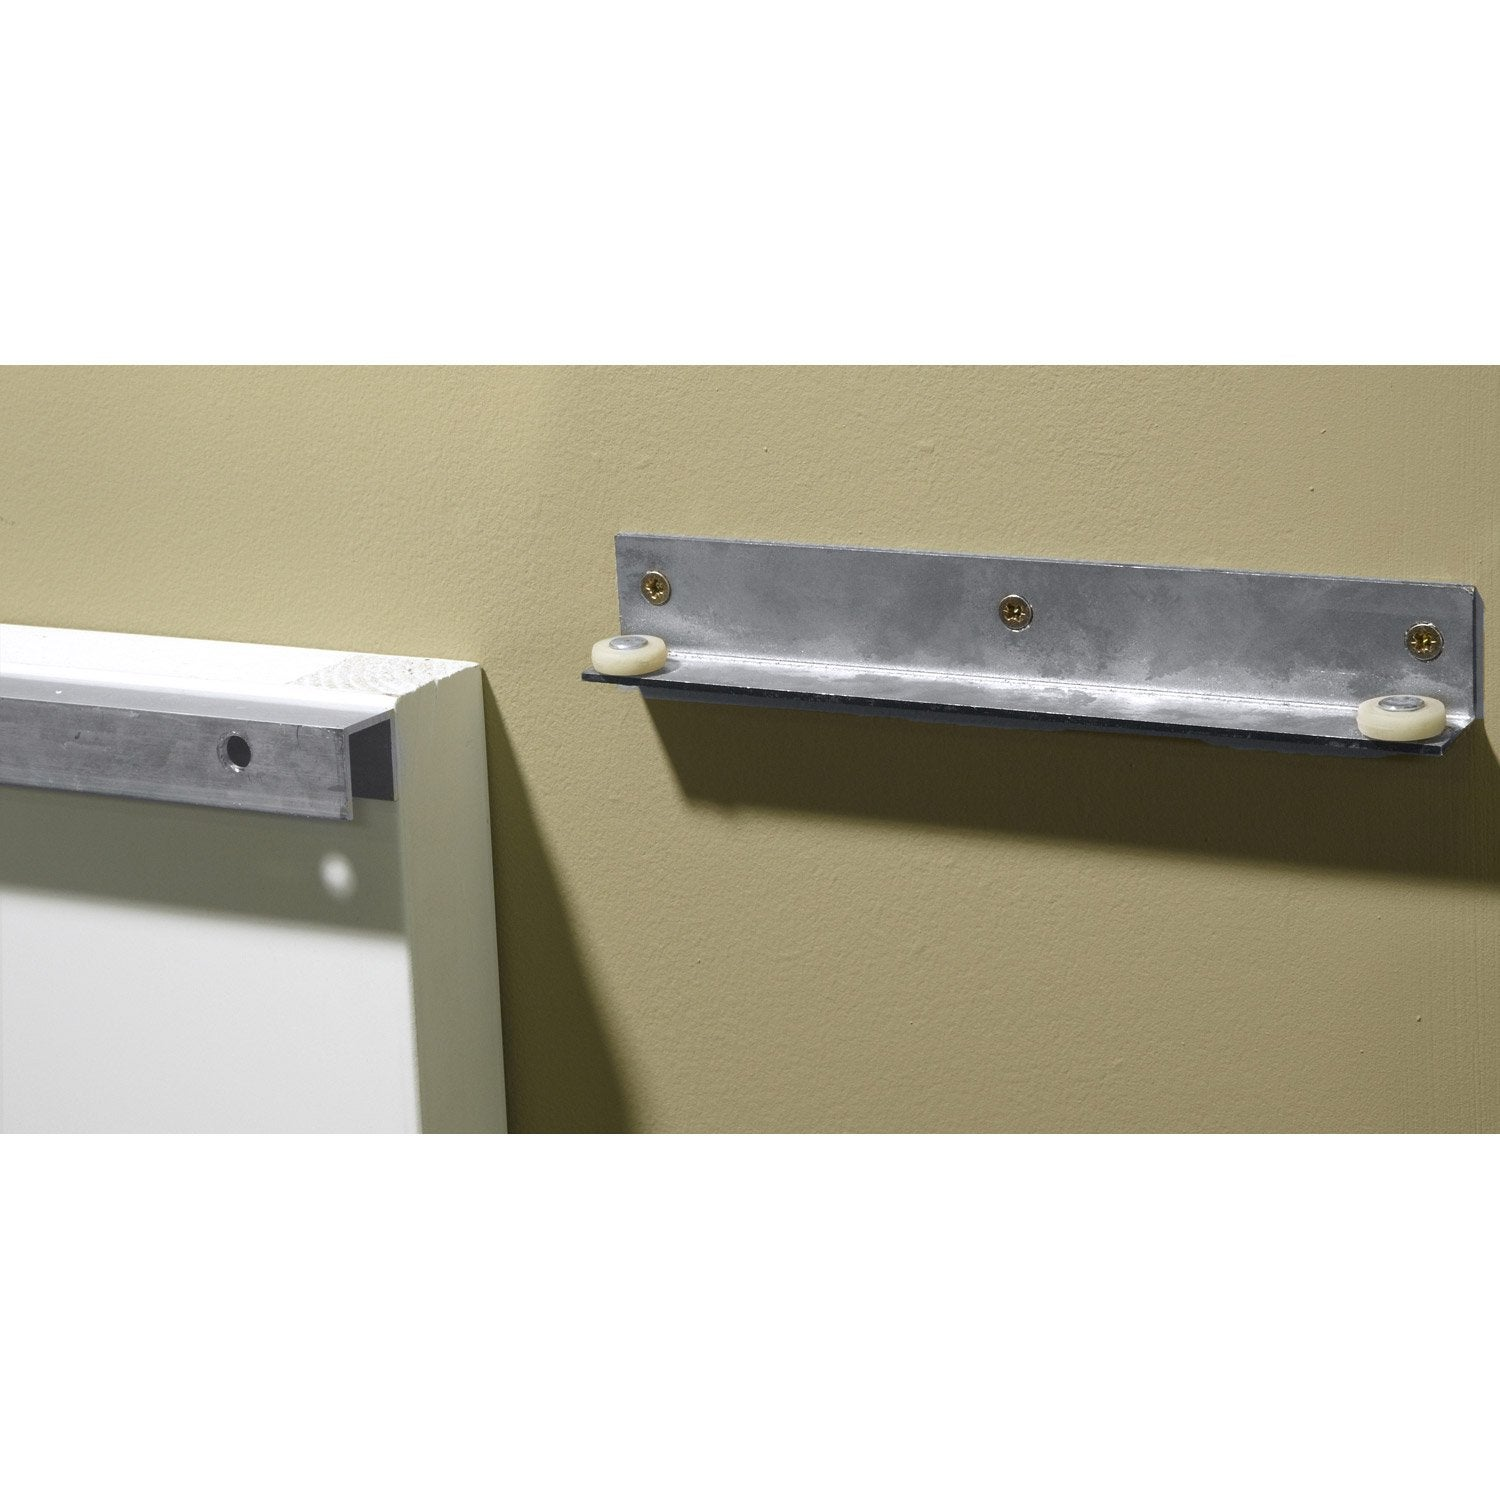 Rail Coulissant Secret ARTENS Pour Porte De Largeur Cm Leroy - Porte invisible leroy merlin